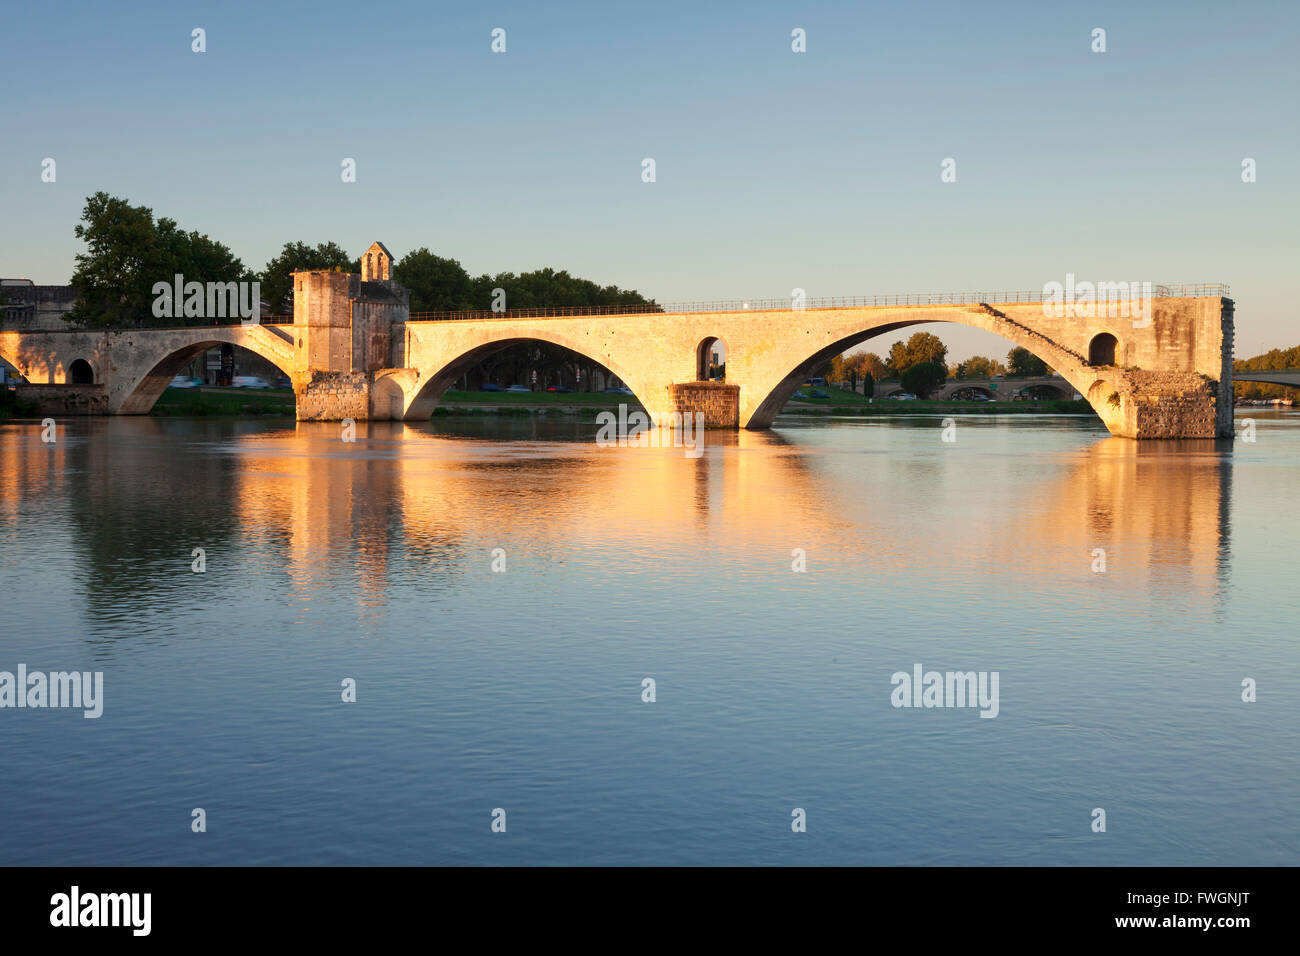 Bridge St. Benezet over Rhone River at sunrise, UNESCO, Avignon, Vaucluse, Provence-Alpes-Cote d'Azur, France - Stock Image